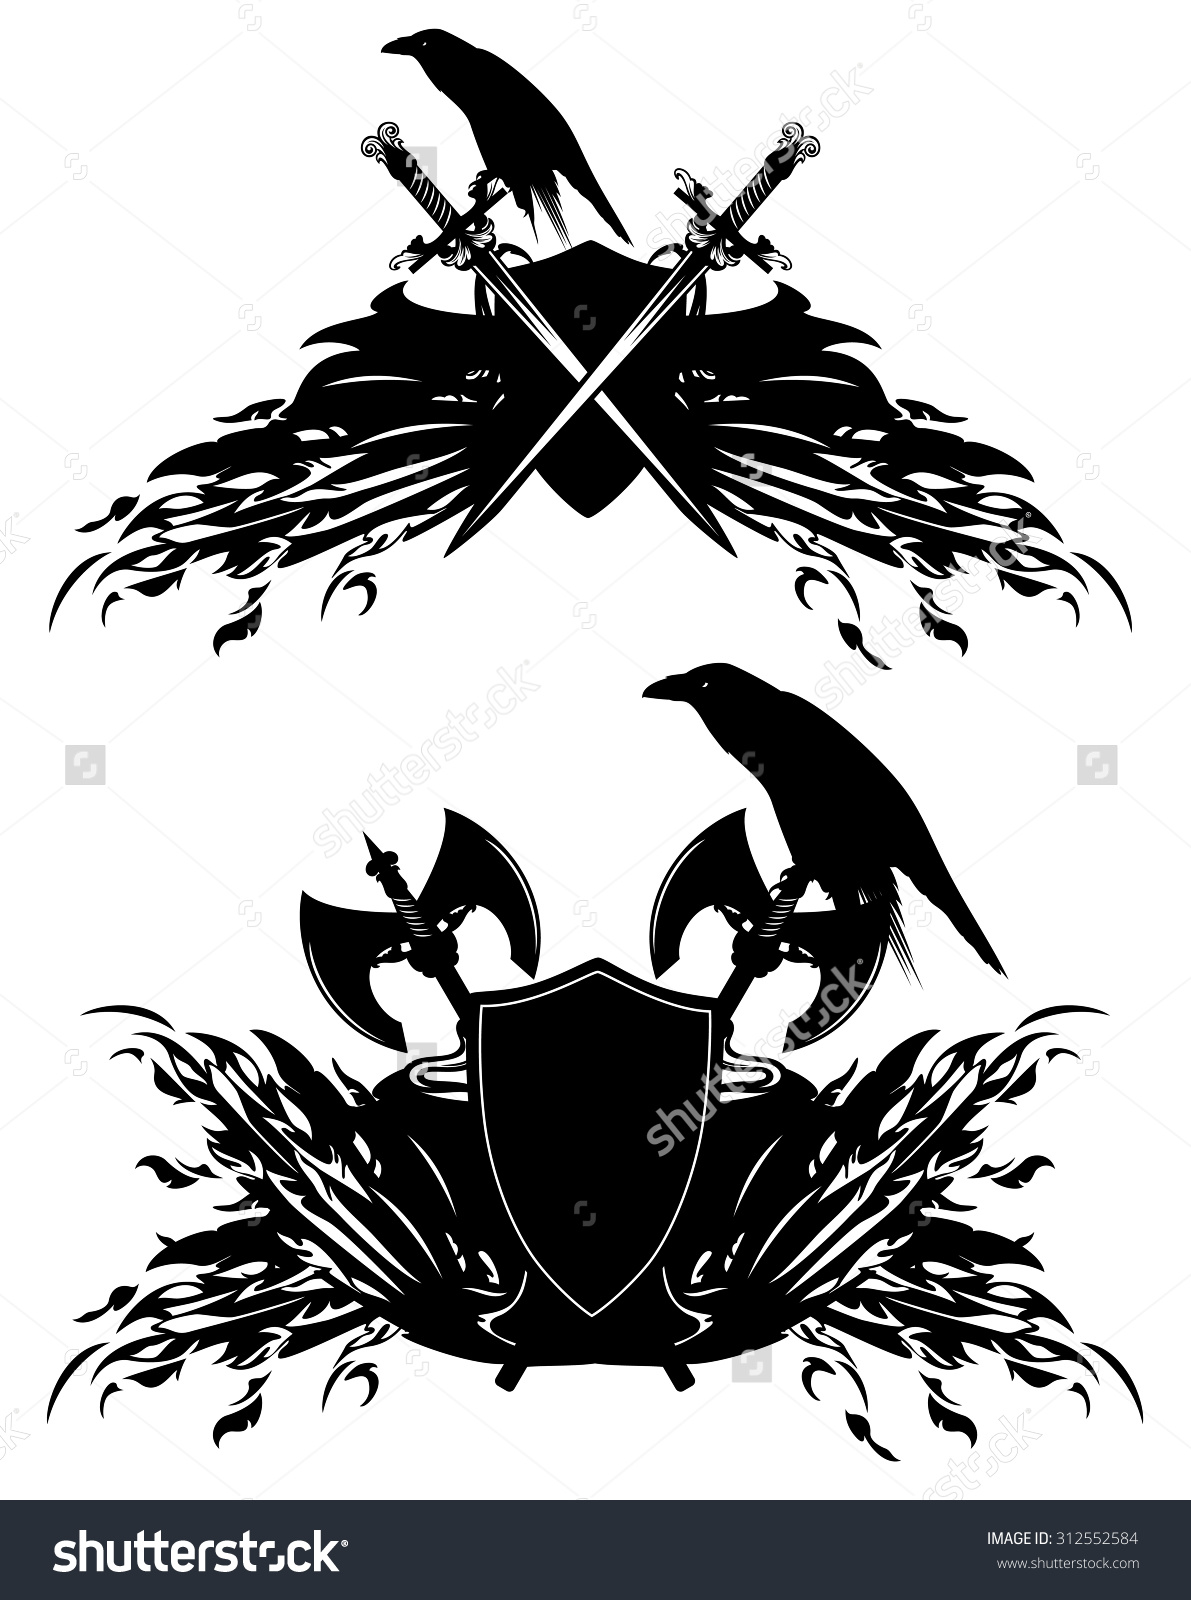 Heraldic Shields Swords Axes Raven Birds Stock Illustration.